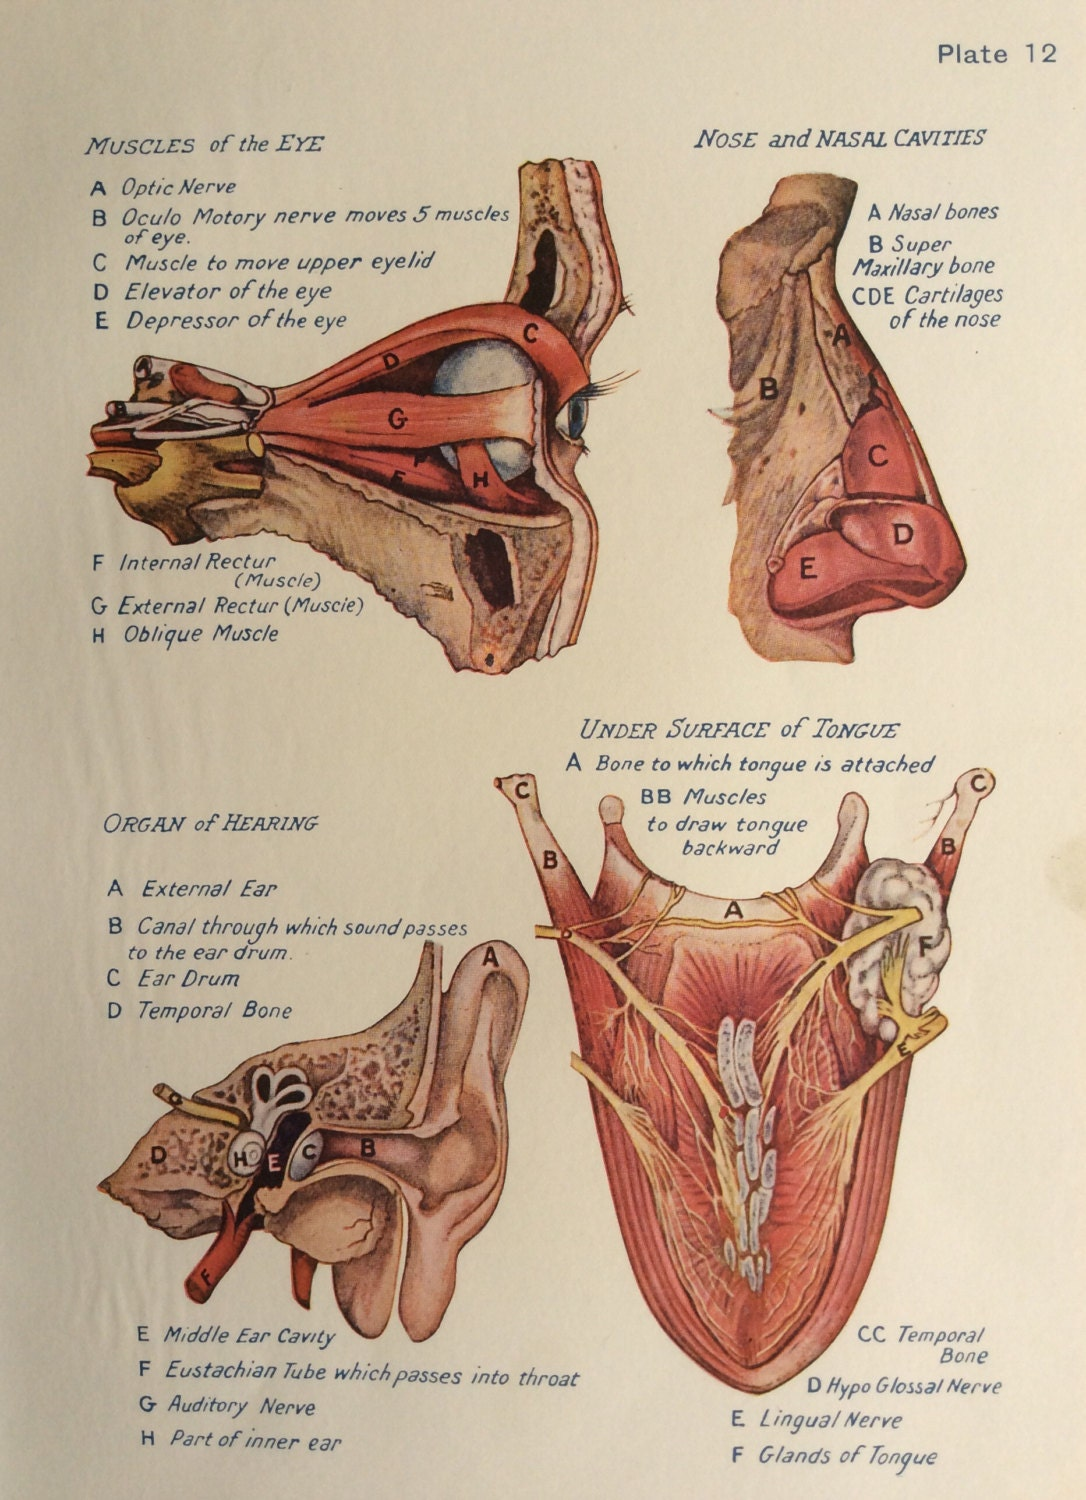 Human anatomy dissection